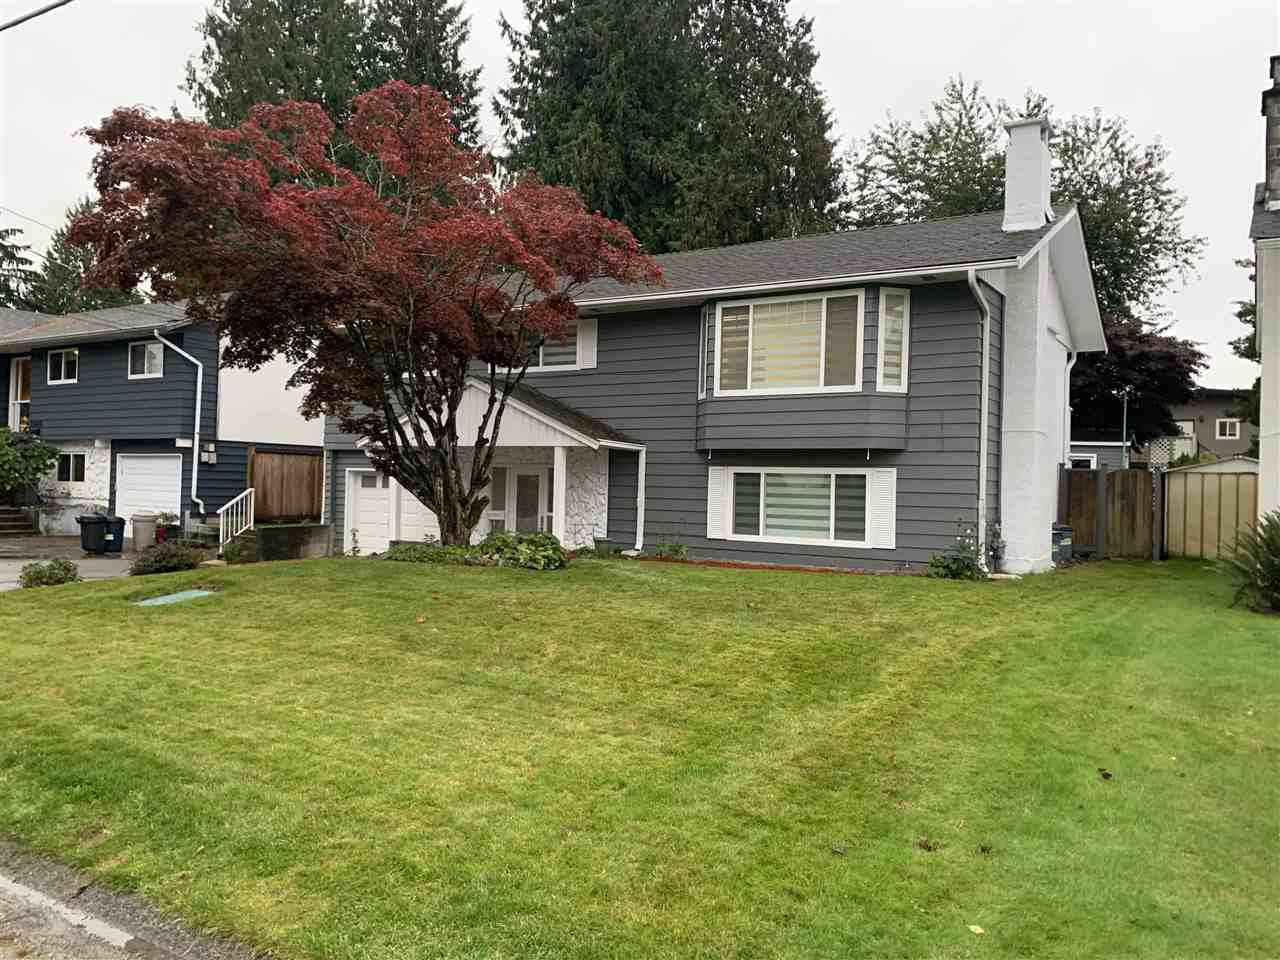 Main Photo: 11676 95 Avenue in Delta: Annieville House for sale (N. Delta)  : MLS®# R2509277